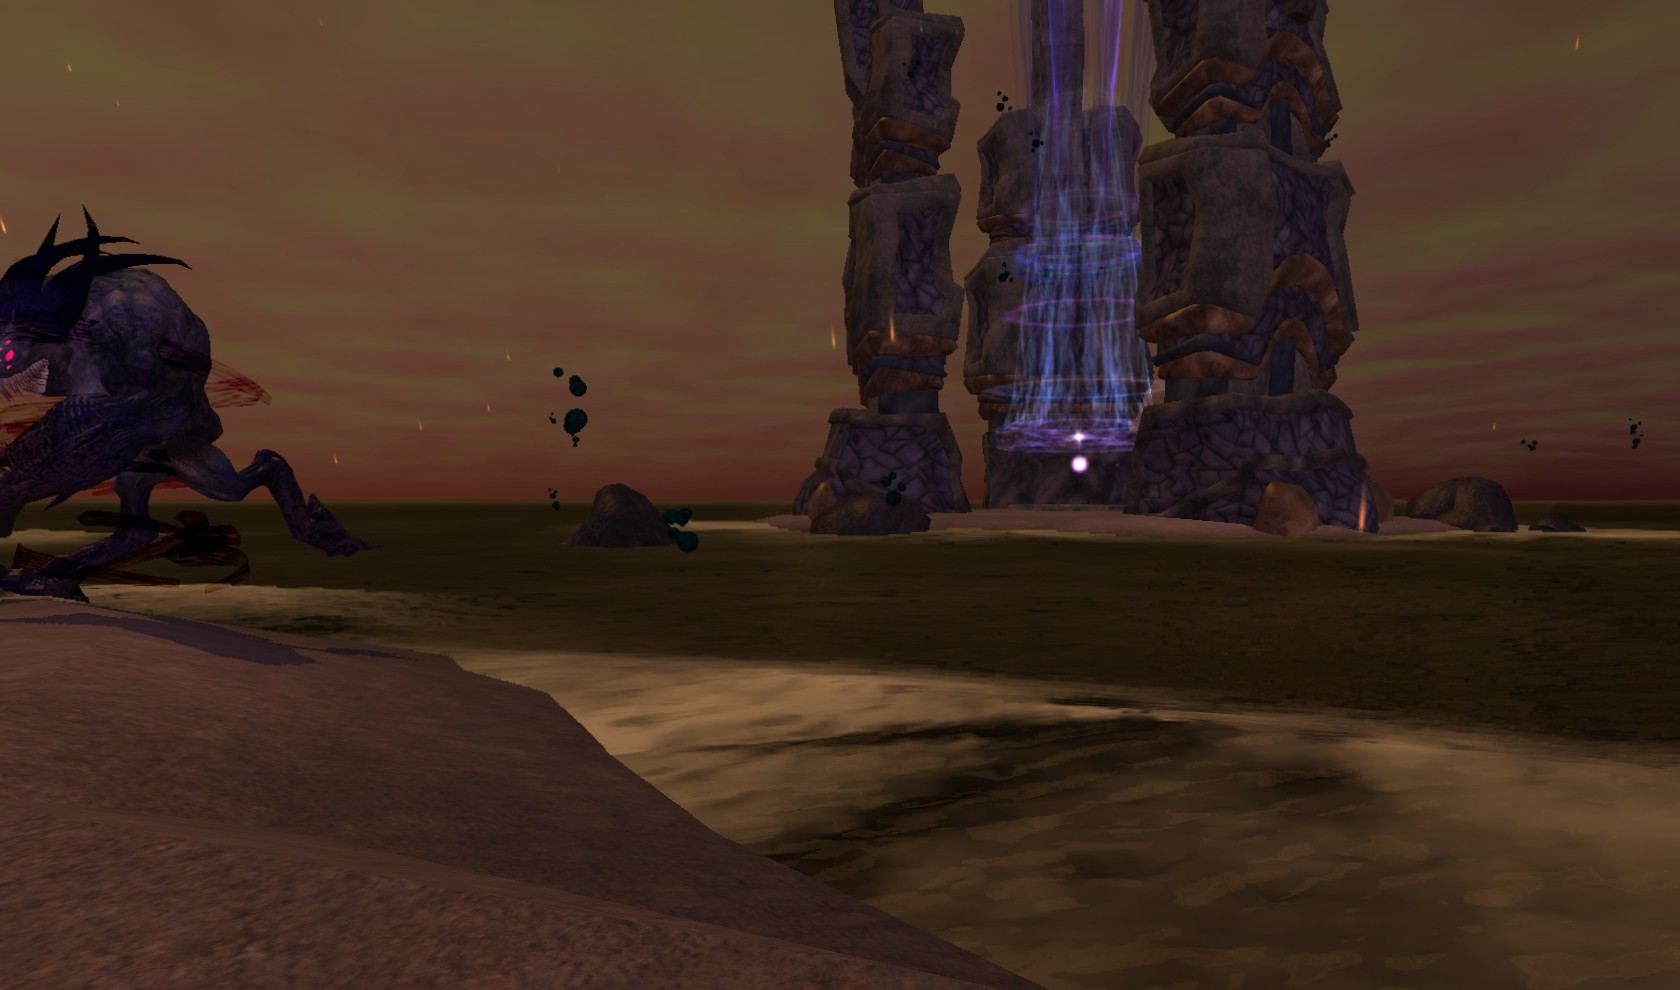 EverQuest II - Lavastorm gets invaded by the Void Creatures